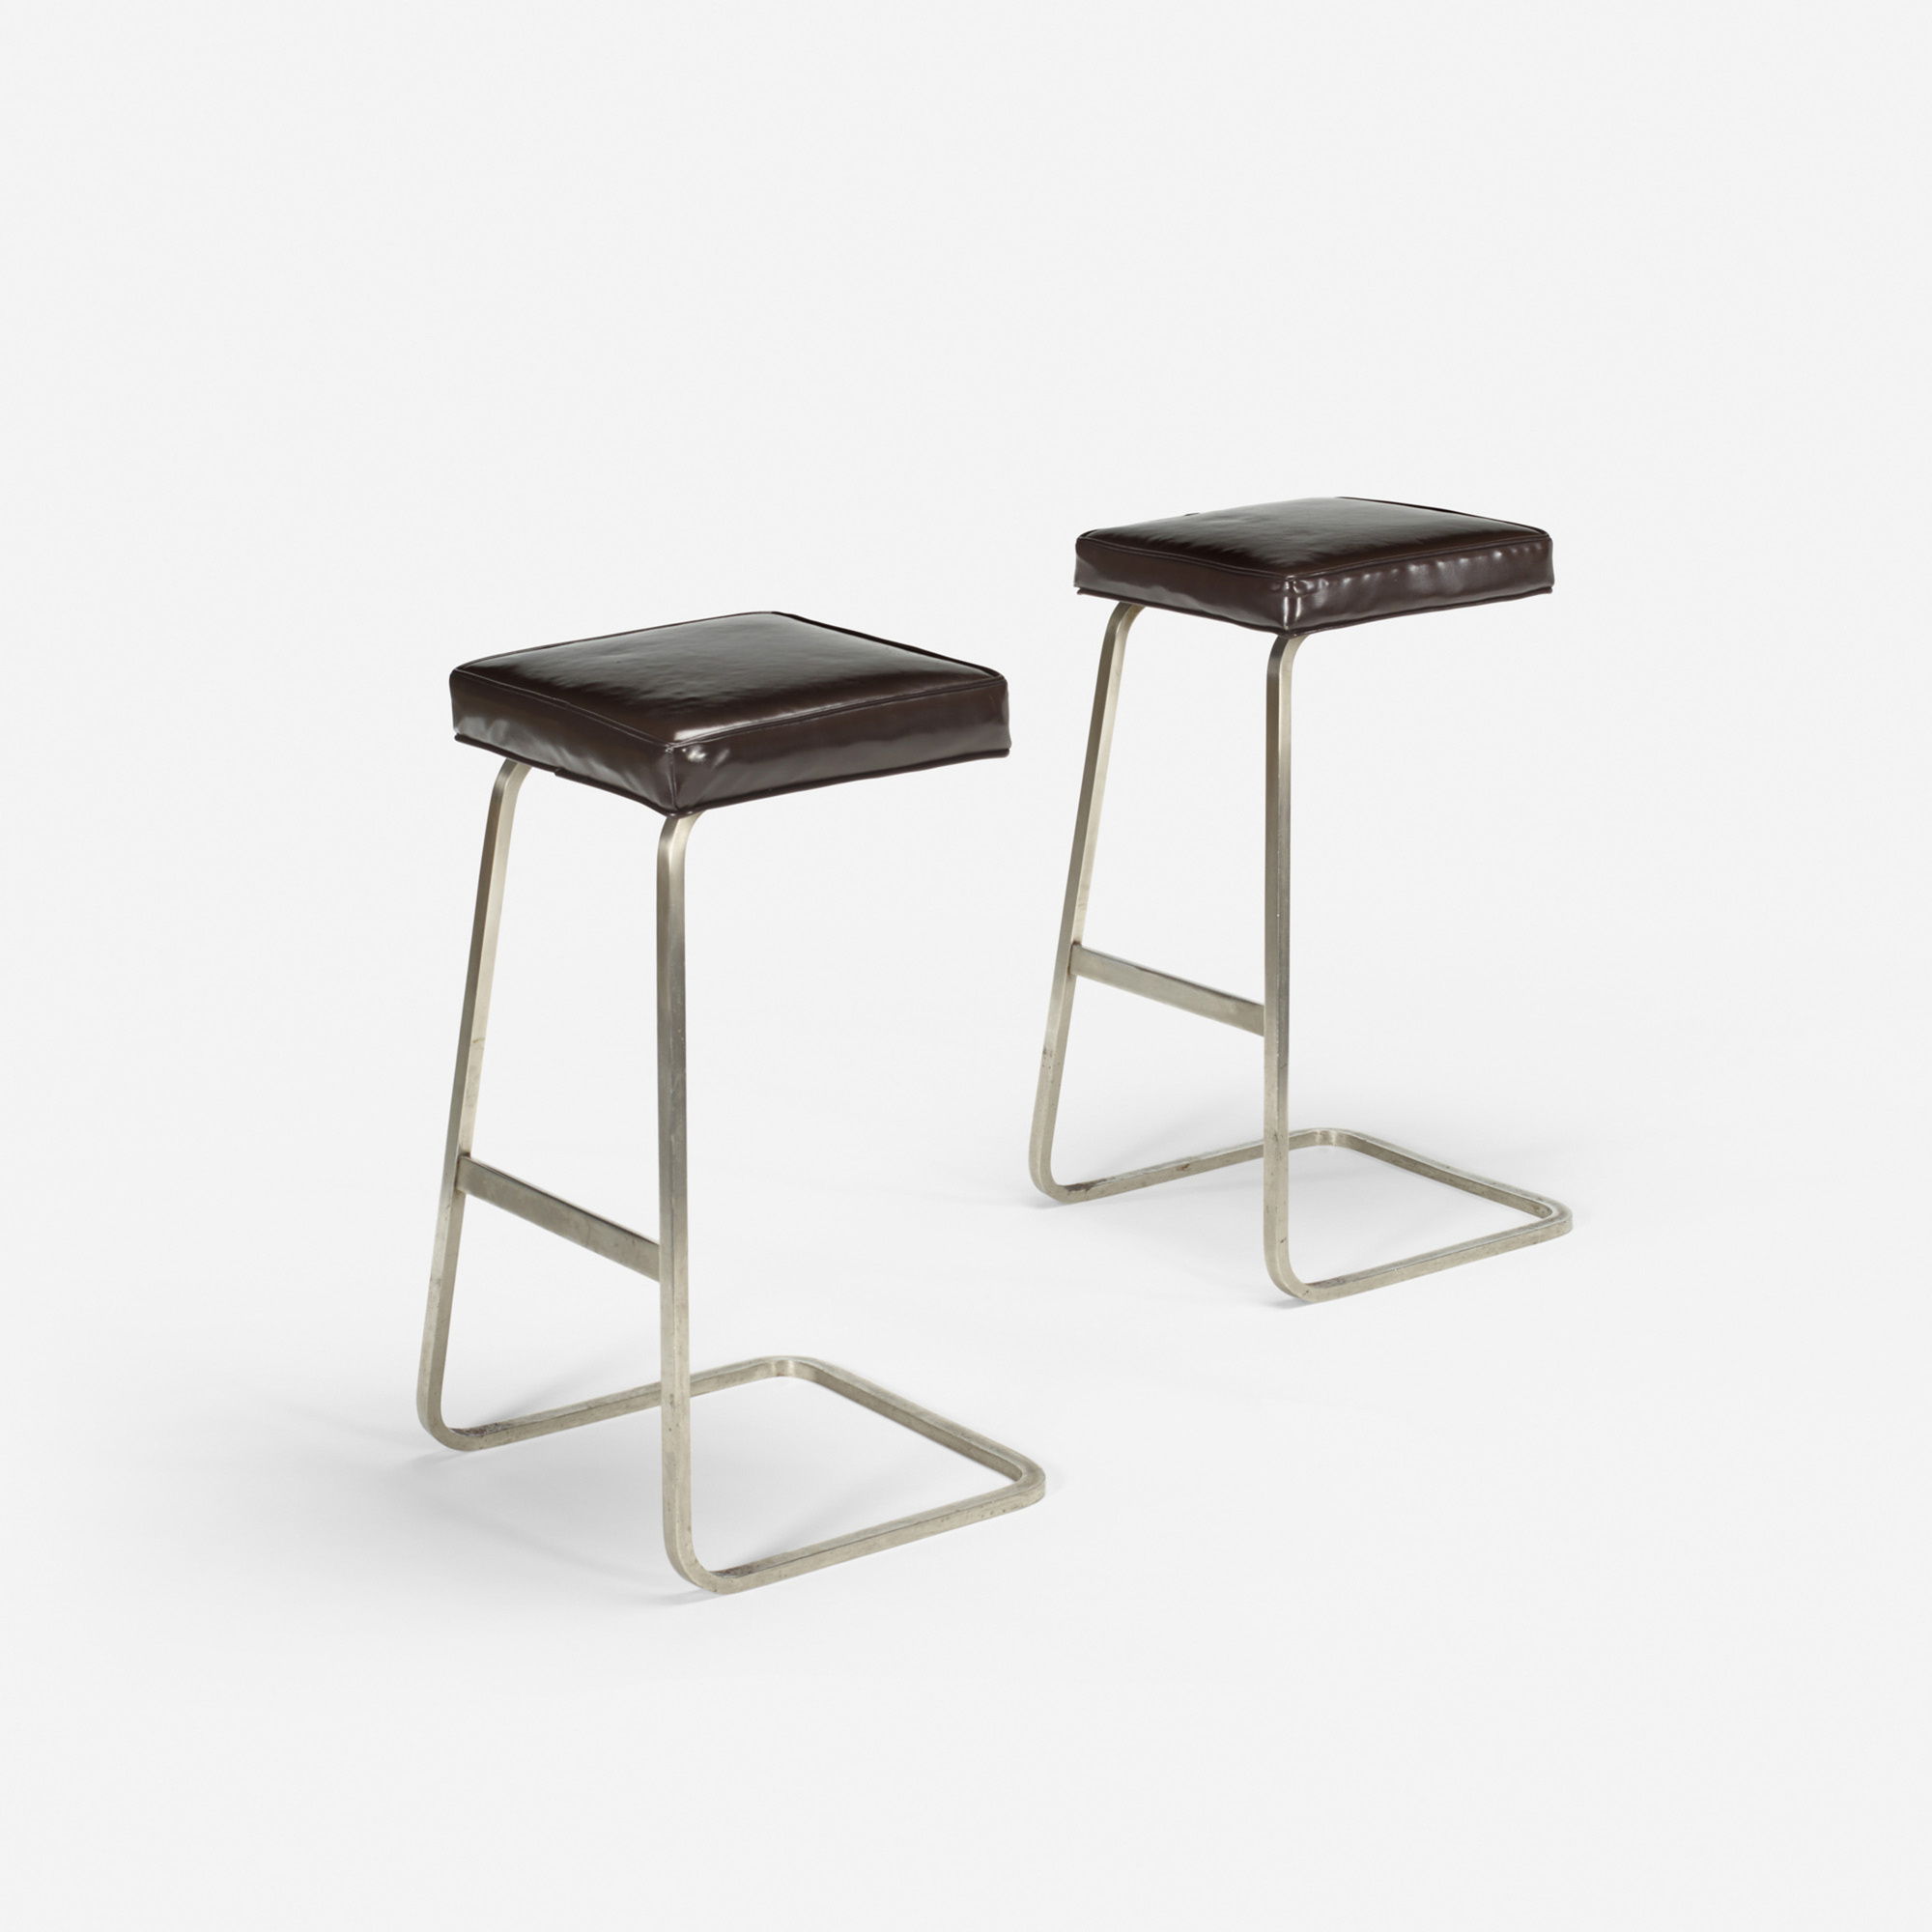 125: Ludwig Mies van der Rohe with Philip Johnson / Four Seasons bar stools from the Grill Room, pair (1 of 1)